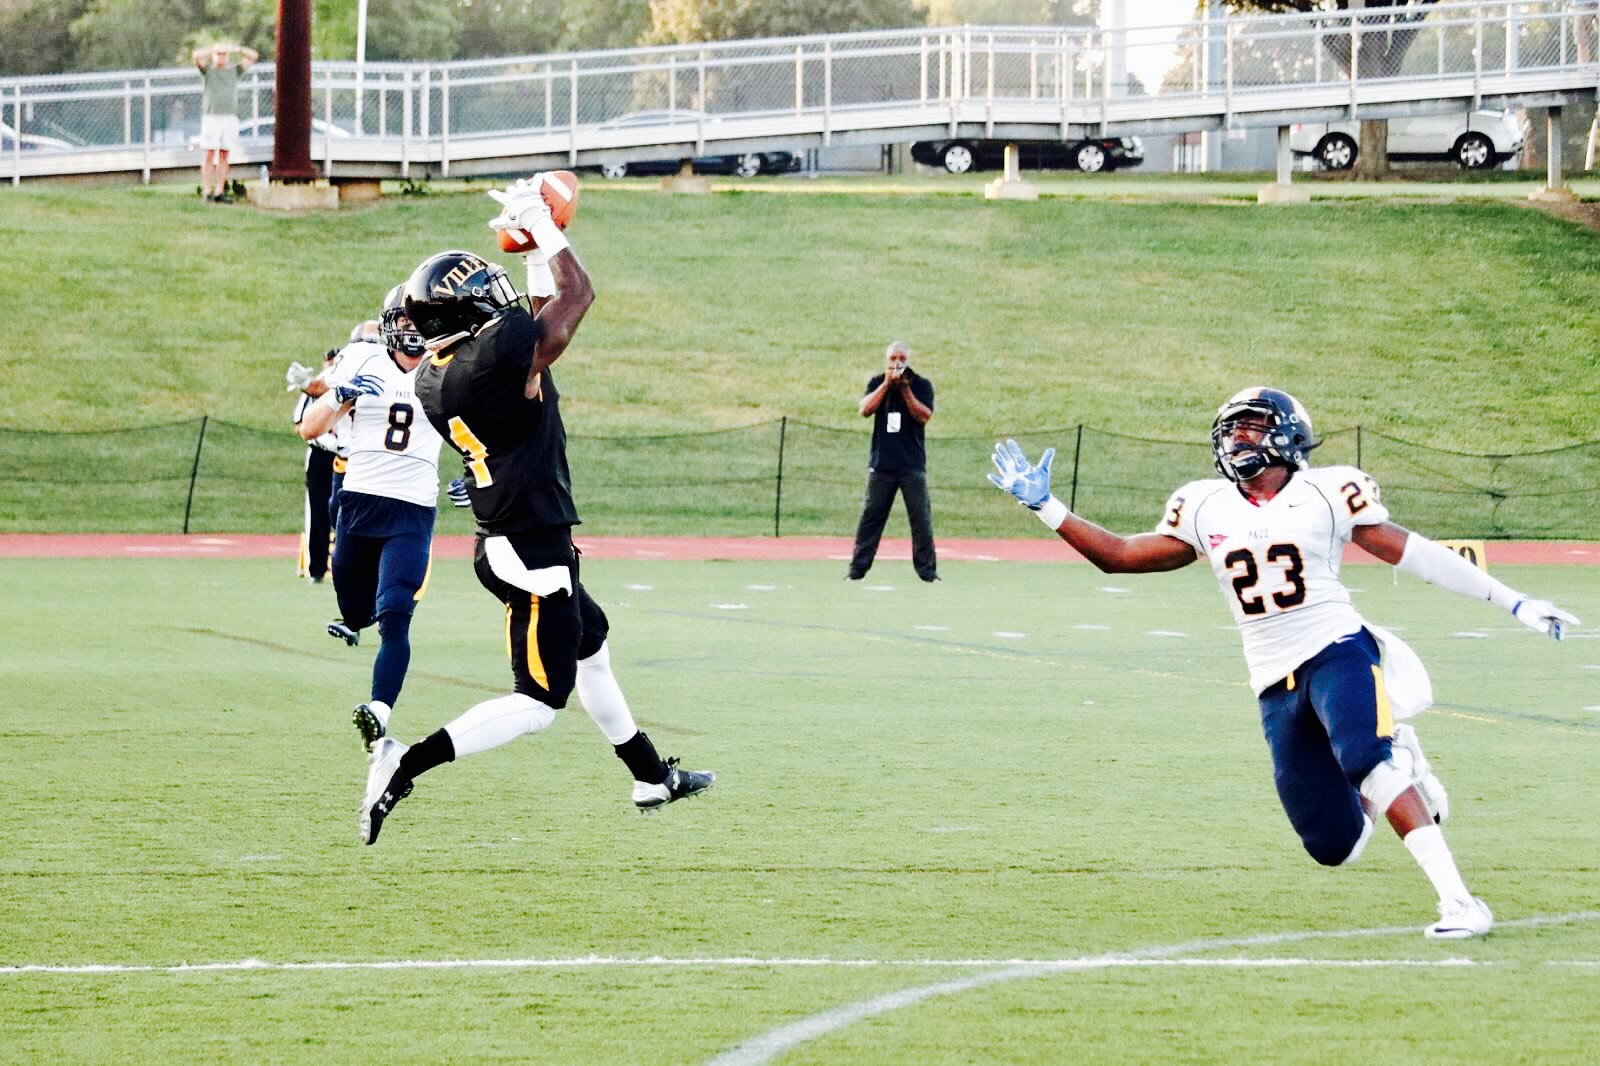 Kevin Wiggins catching pass